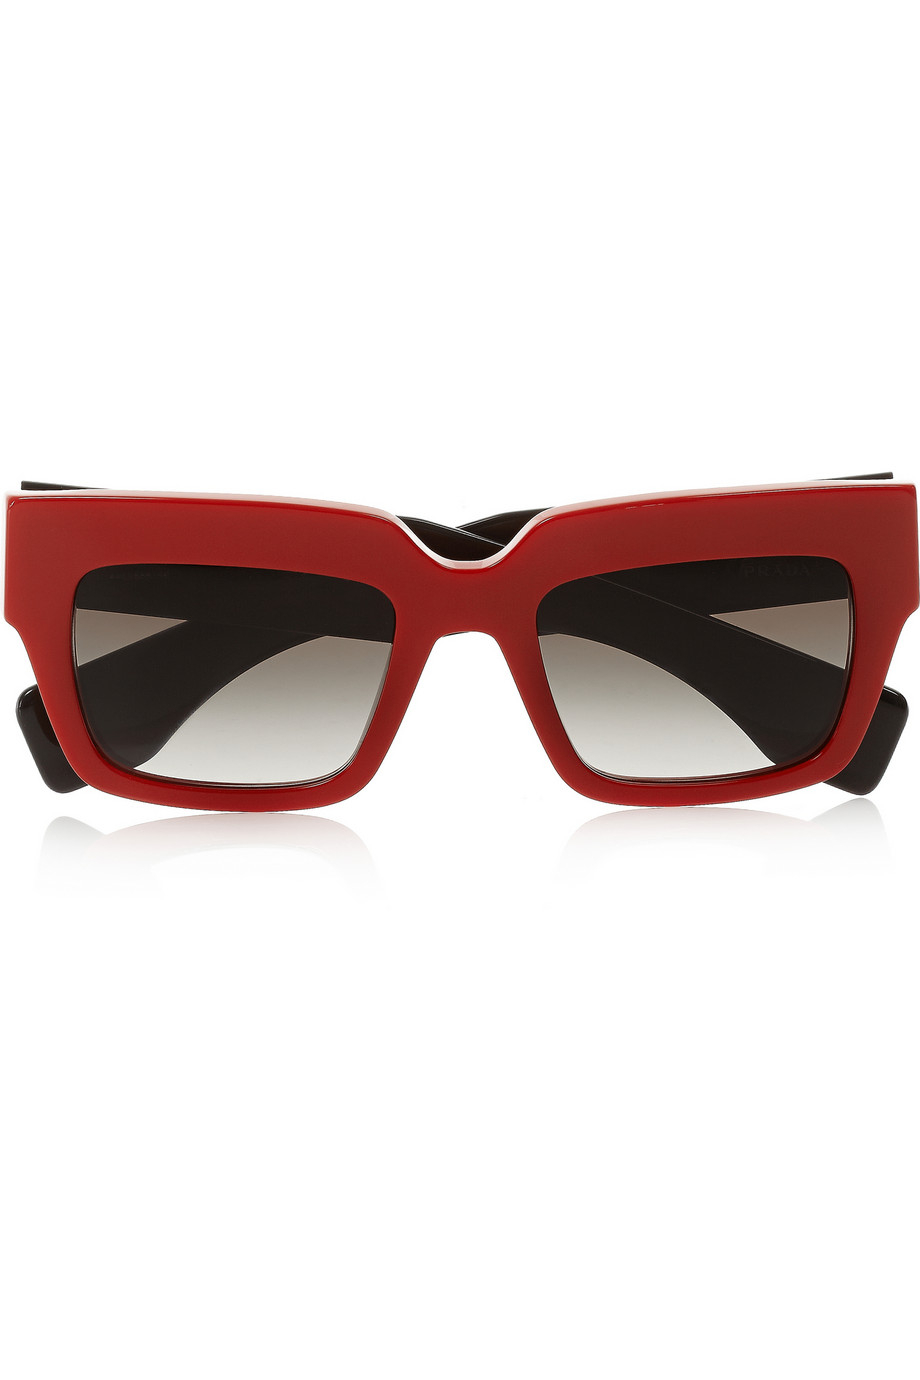 Prada Red Frame Glasses : Prada Square-Frame Acetate Sunglasses in Black Lyst